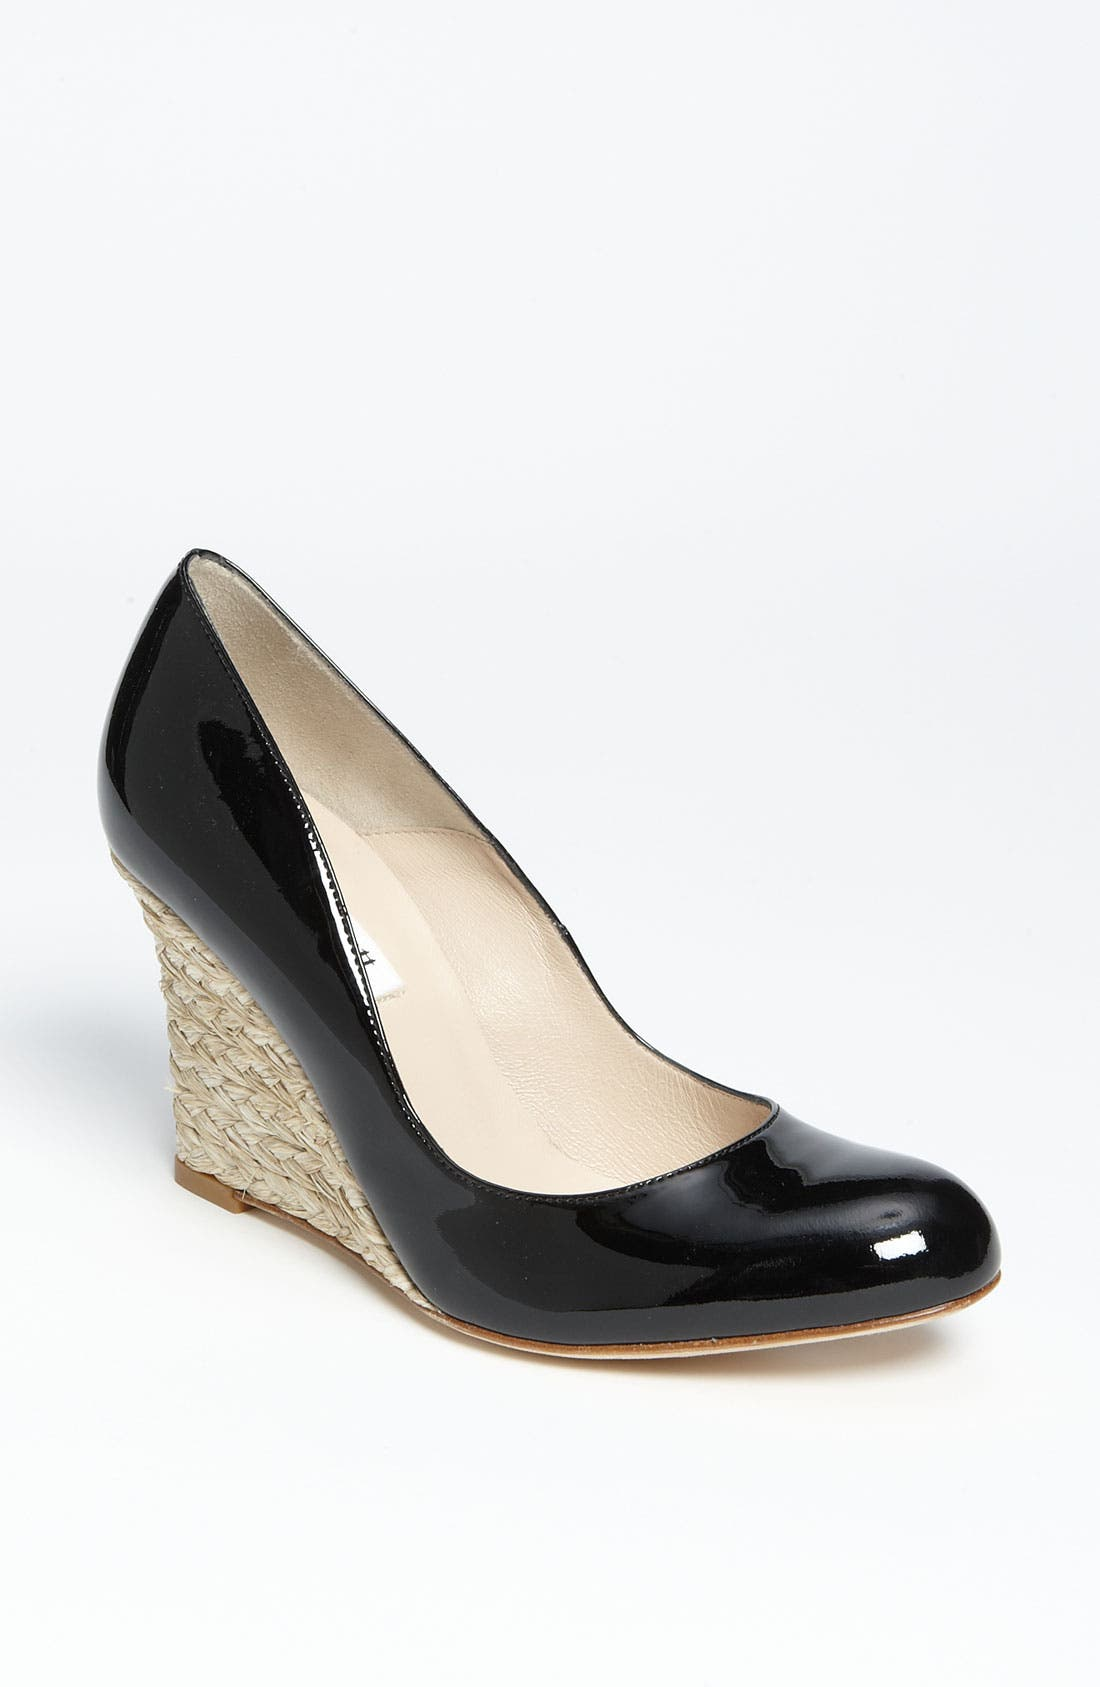 Main Image - L.K. Bennett 'Maddox' Wedge Pump